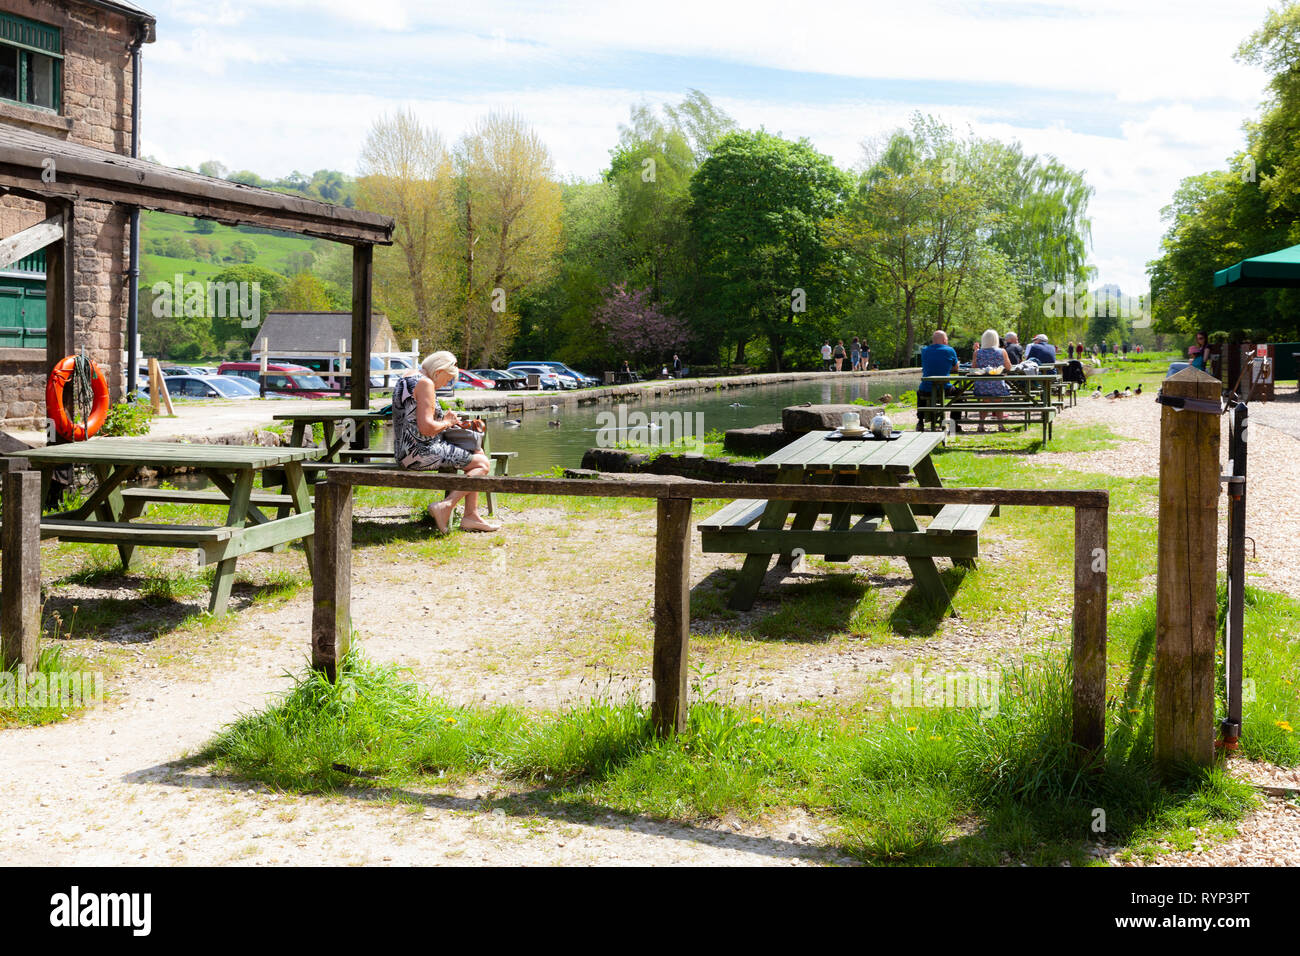 Cromford Wharf, is a small picturesque place, in the Derbyshire country site, next to a canal, it has a small cafe on site - Stock Image